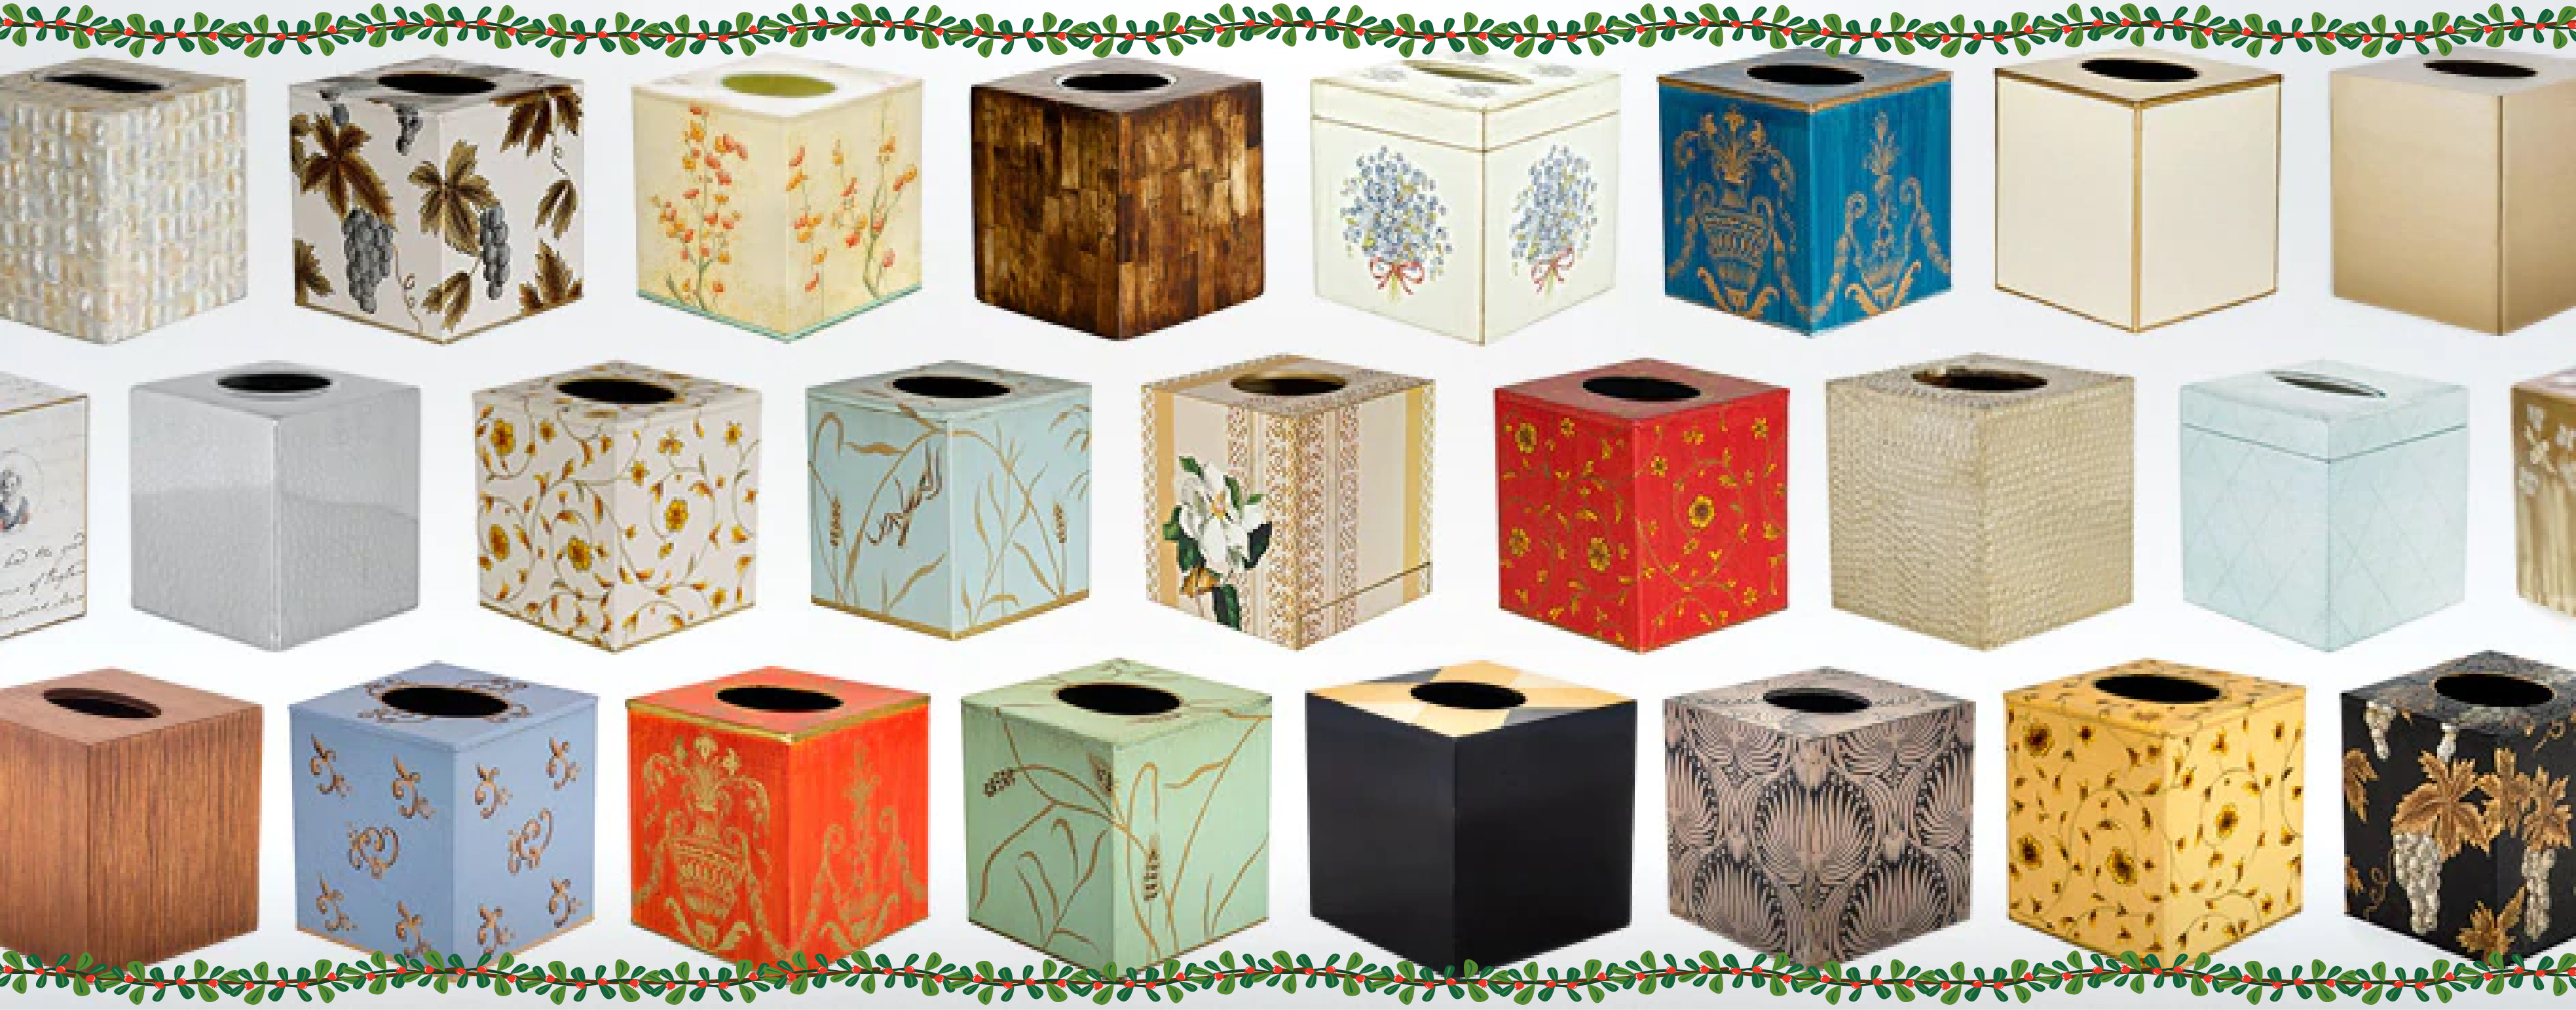 Luxury Decorative Tissues Cover Box Square Cube Ivory Gold Painted Wood Rattan Gold UK